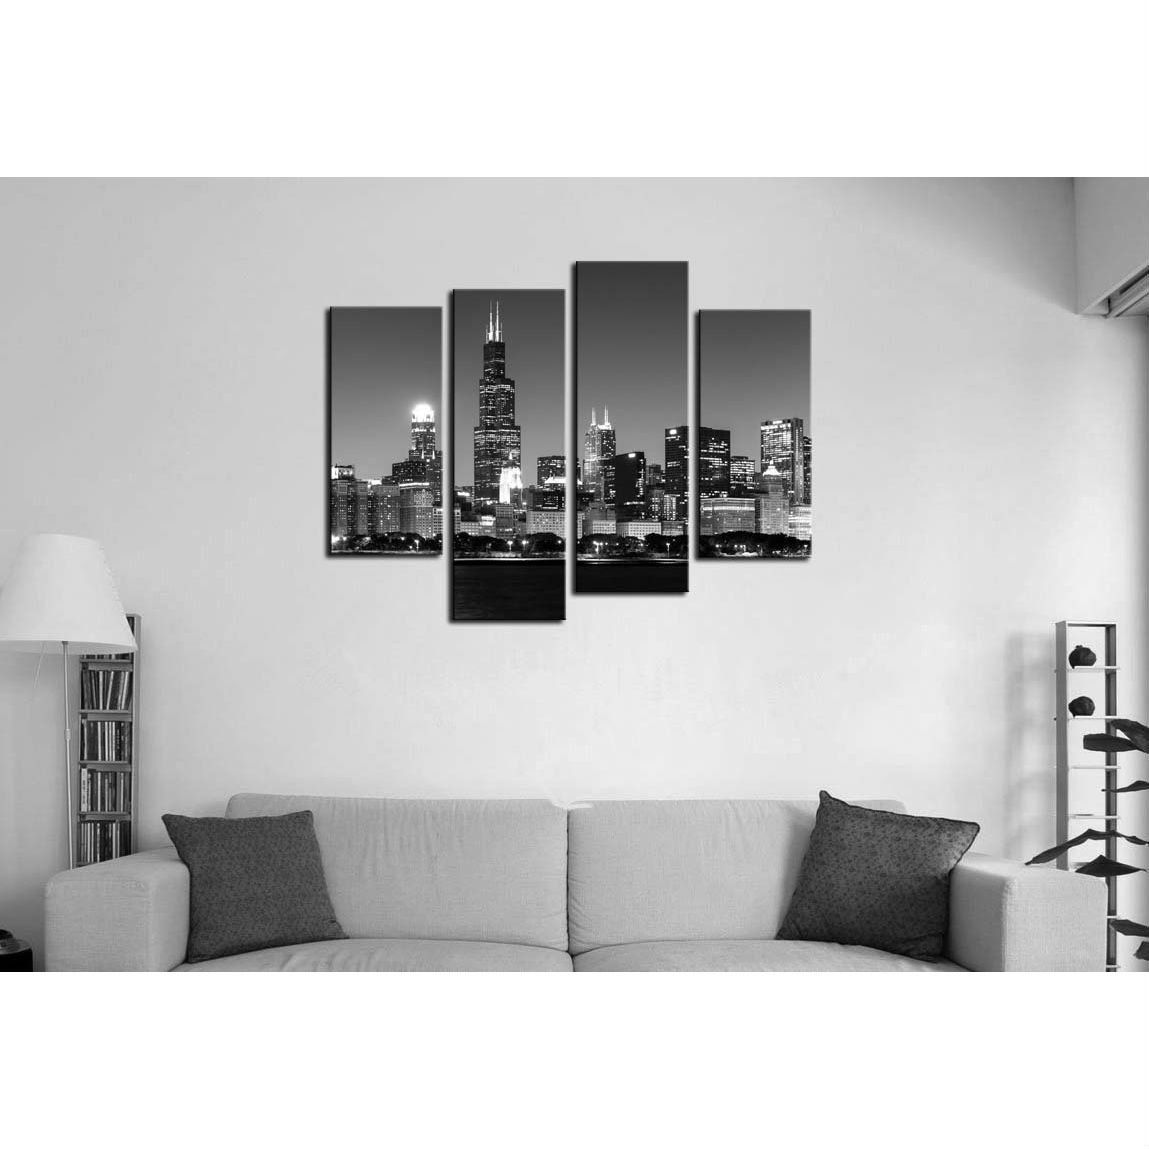 Chicago night skyline black white print panel canvas wall art